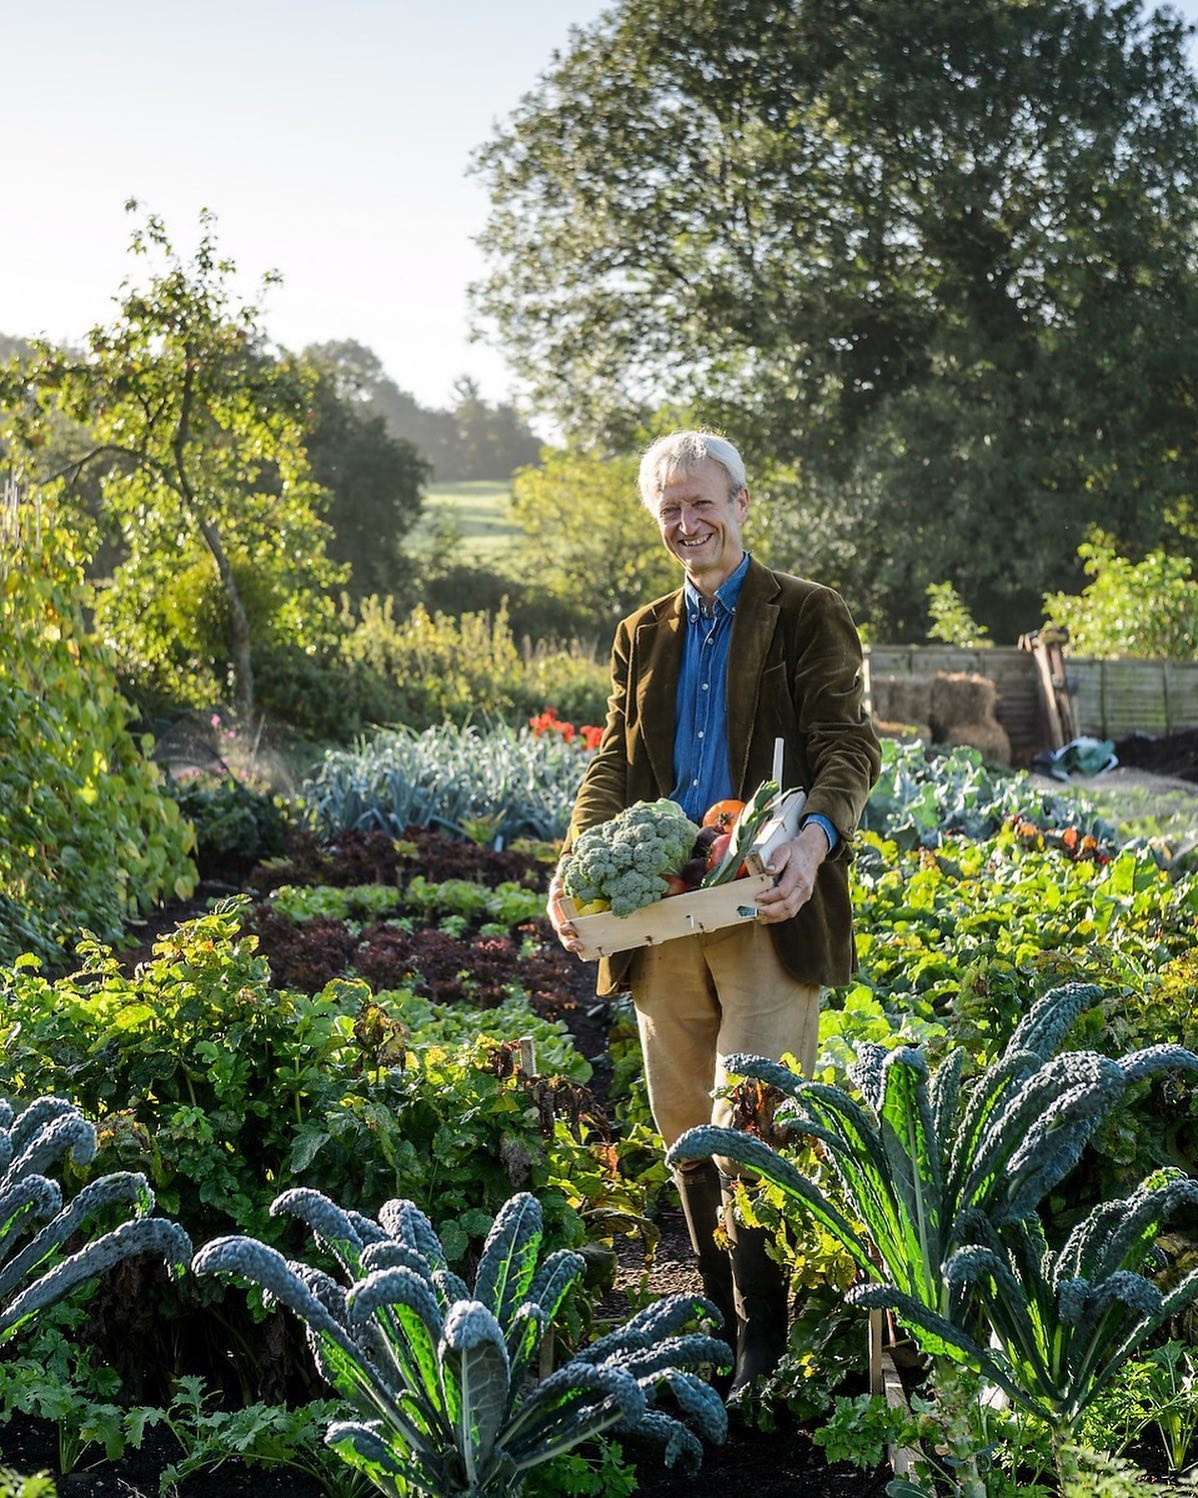 A favourite portrait of Charles Dowding at first light @charles_dowding in his wonderful Veg Garden...#charlesdowding #portraitphotographer #portraitphotography #gardenphotographer #gardenphotography #growyourown #vegetablegardens #vegetablegarden #nikonphotography #nikon #nikonphotographer #nodiggarden #nodig